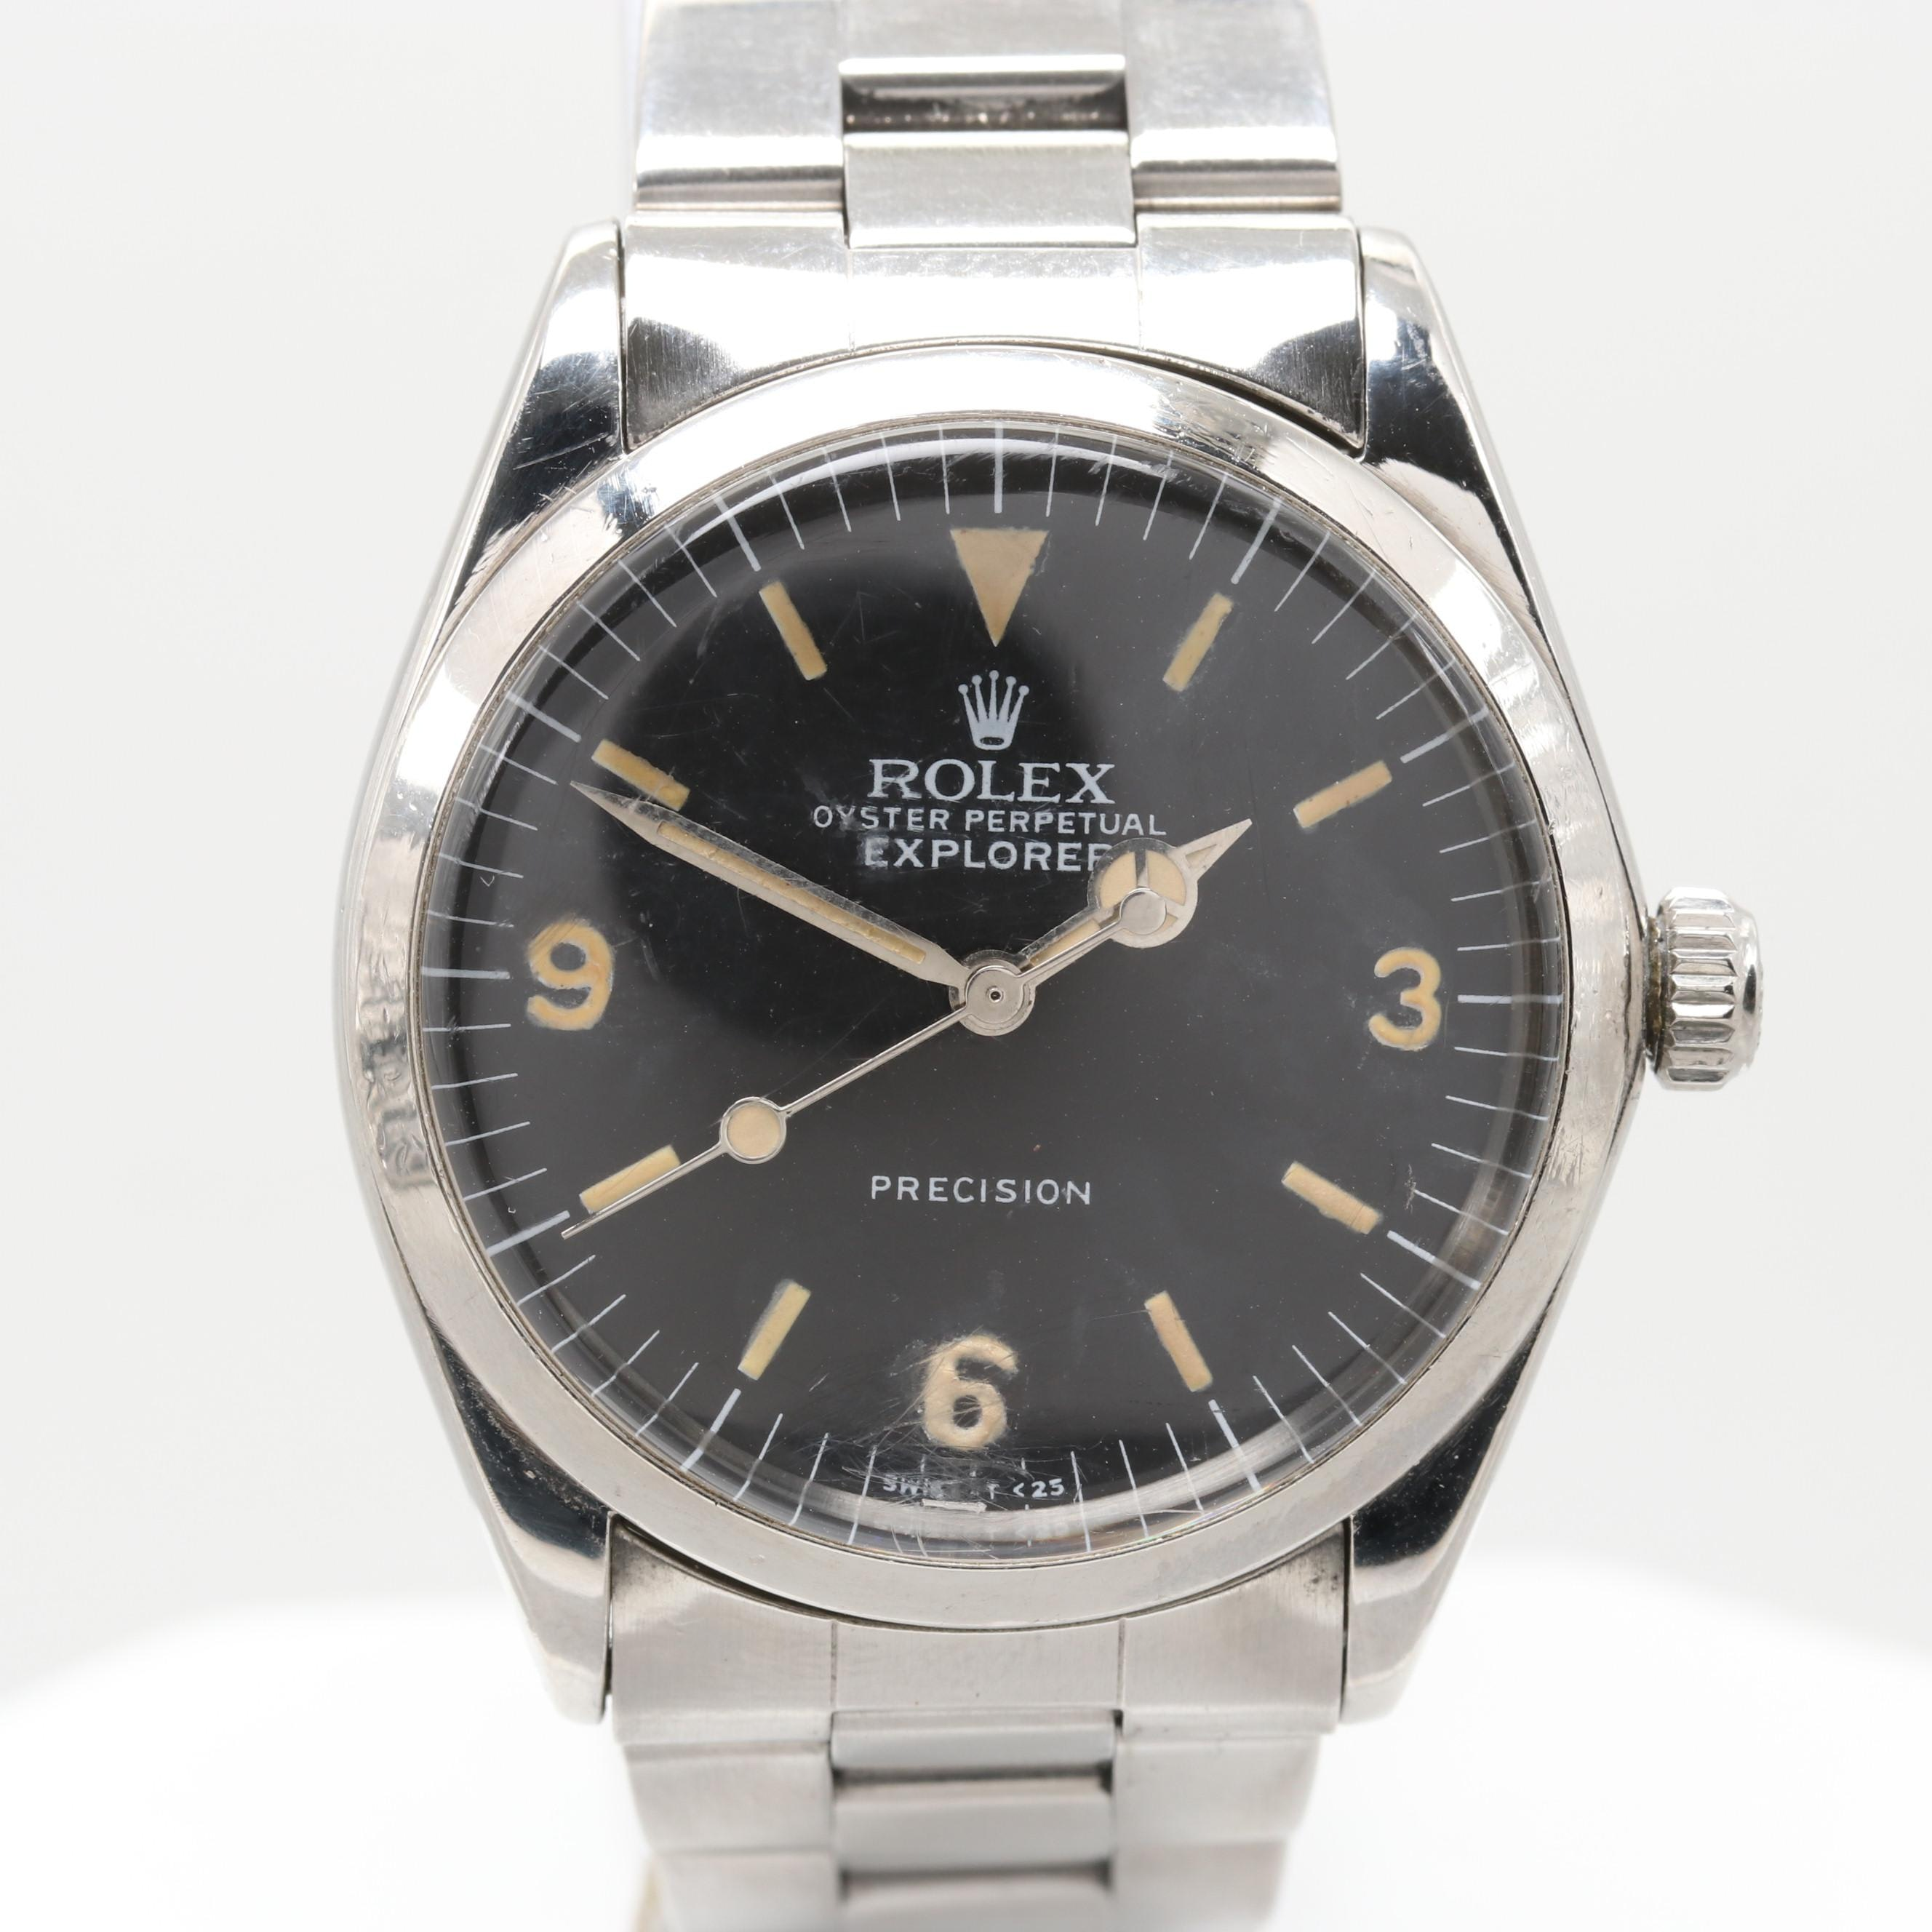 Rolex Explorer Automatic Wristwatch, 1965